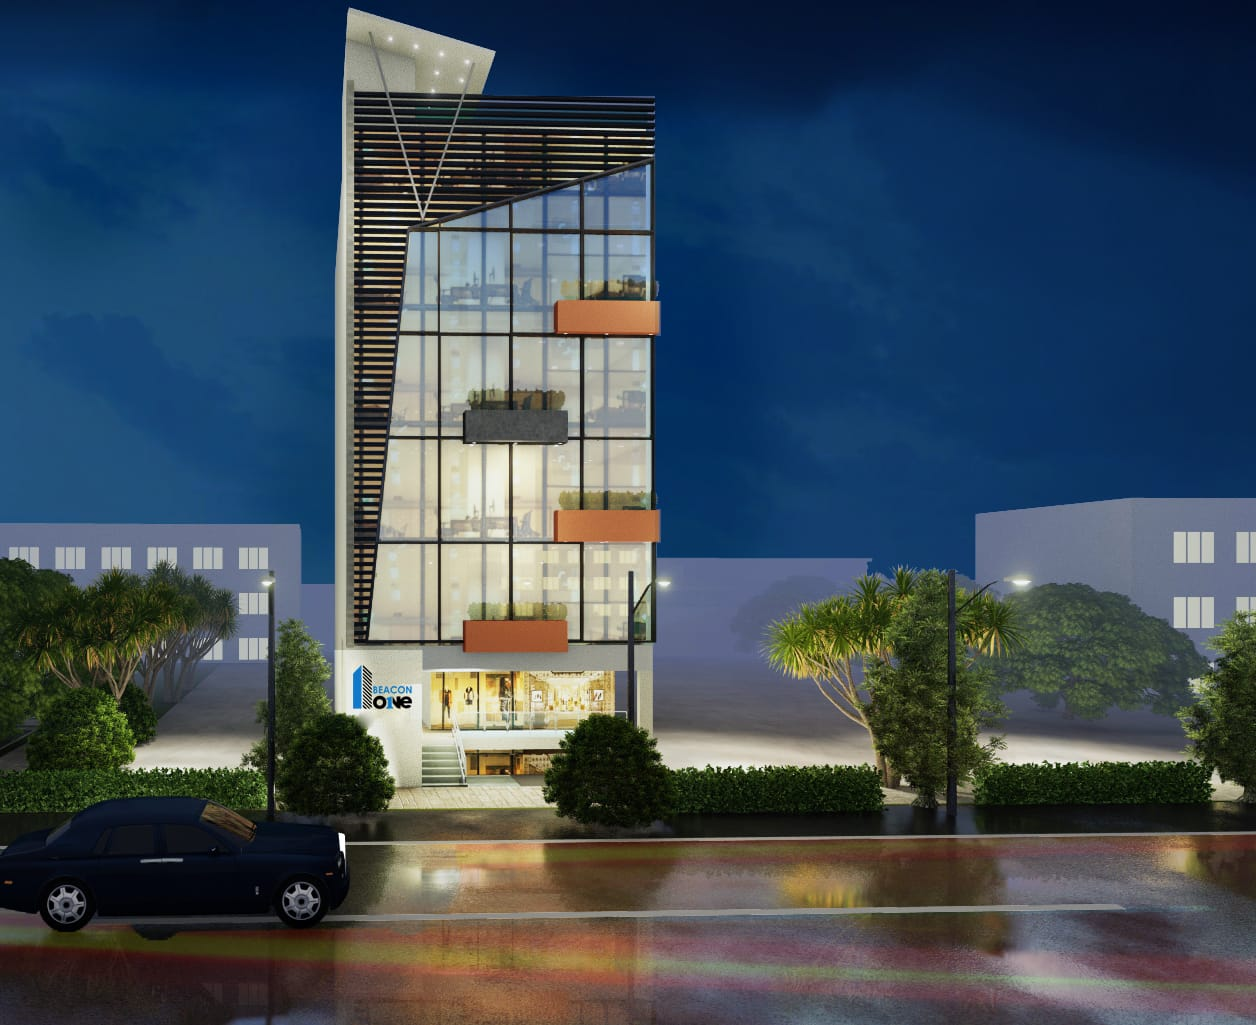 beacon one-bahria paradise islamabad- commercial and coporate project by beacon investment